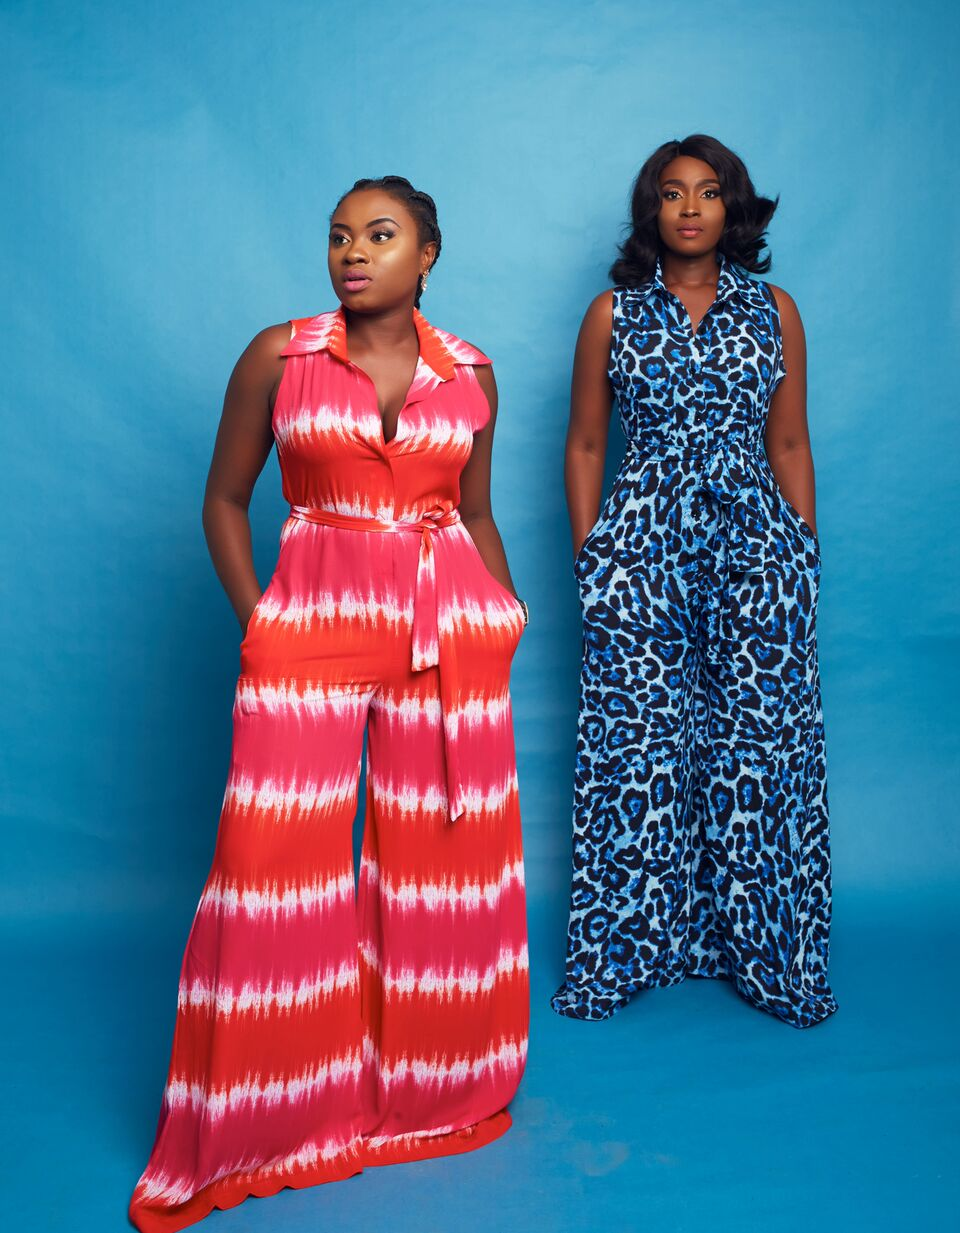 DT Clothings - Fete Collection - BN Style - BellaNaija.com - 011